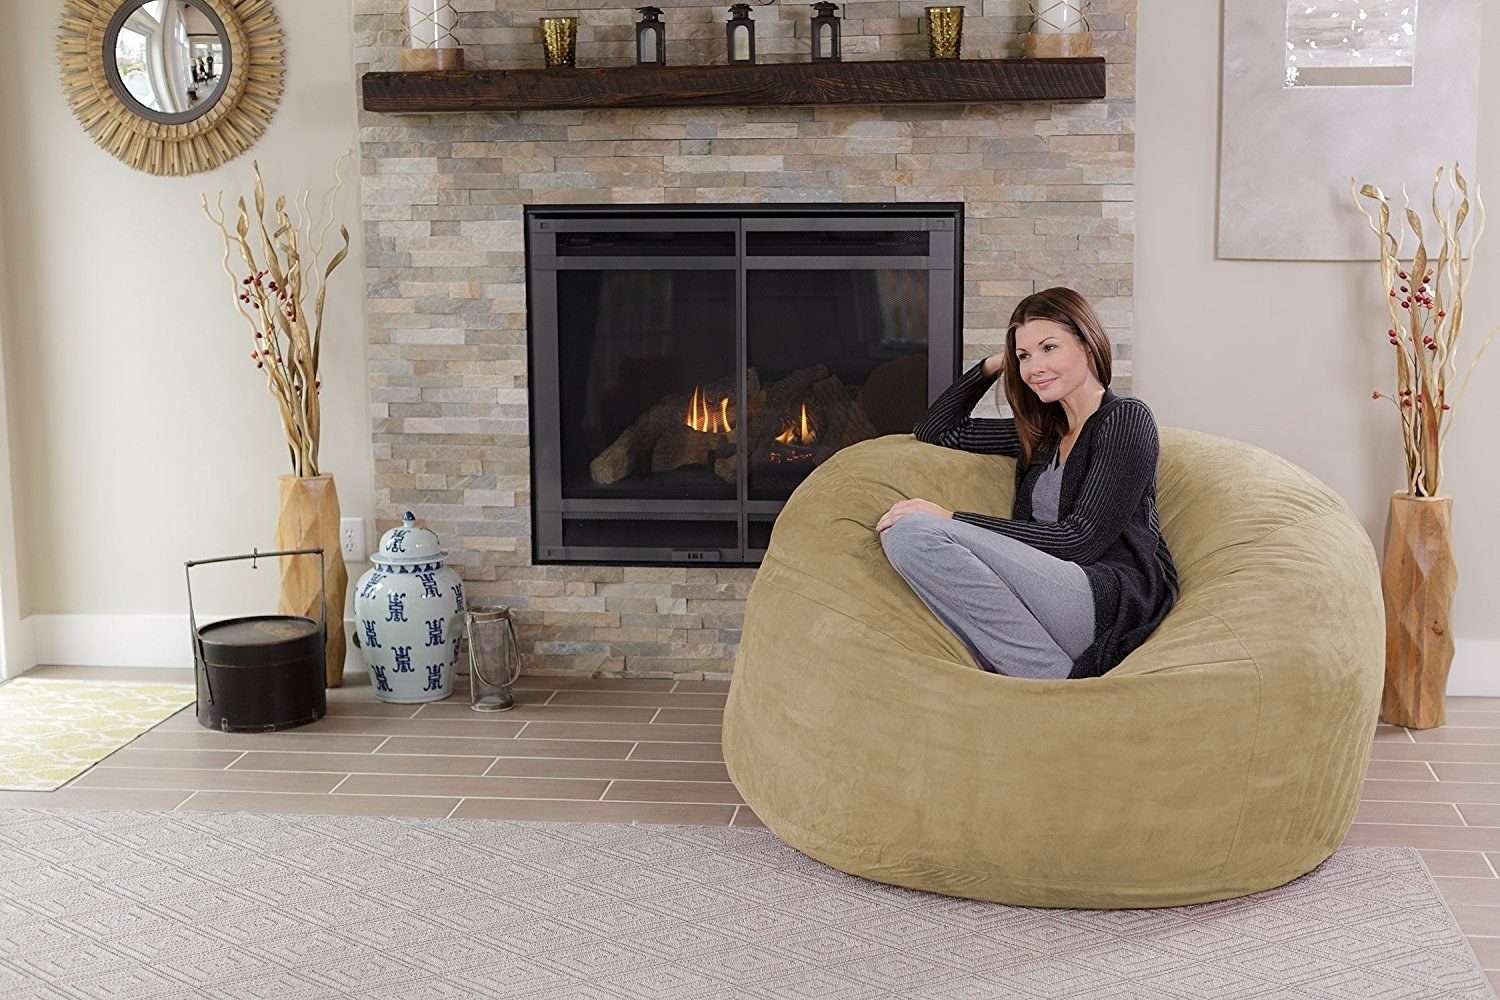 30 Things To Make Every Room In Your House More Comfortable